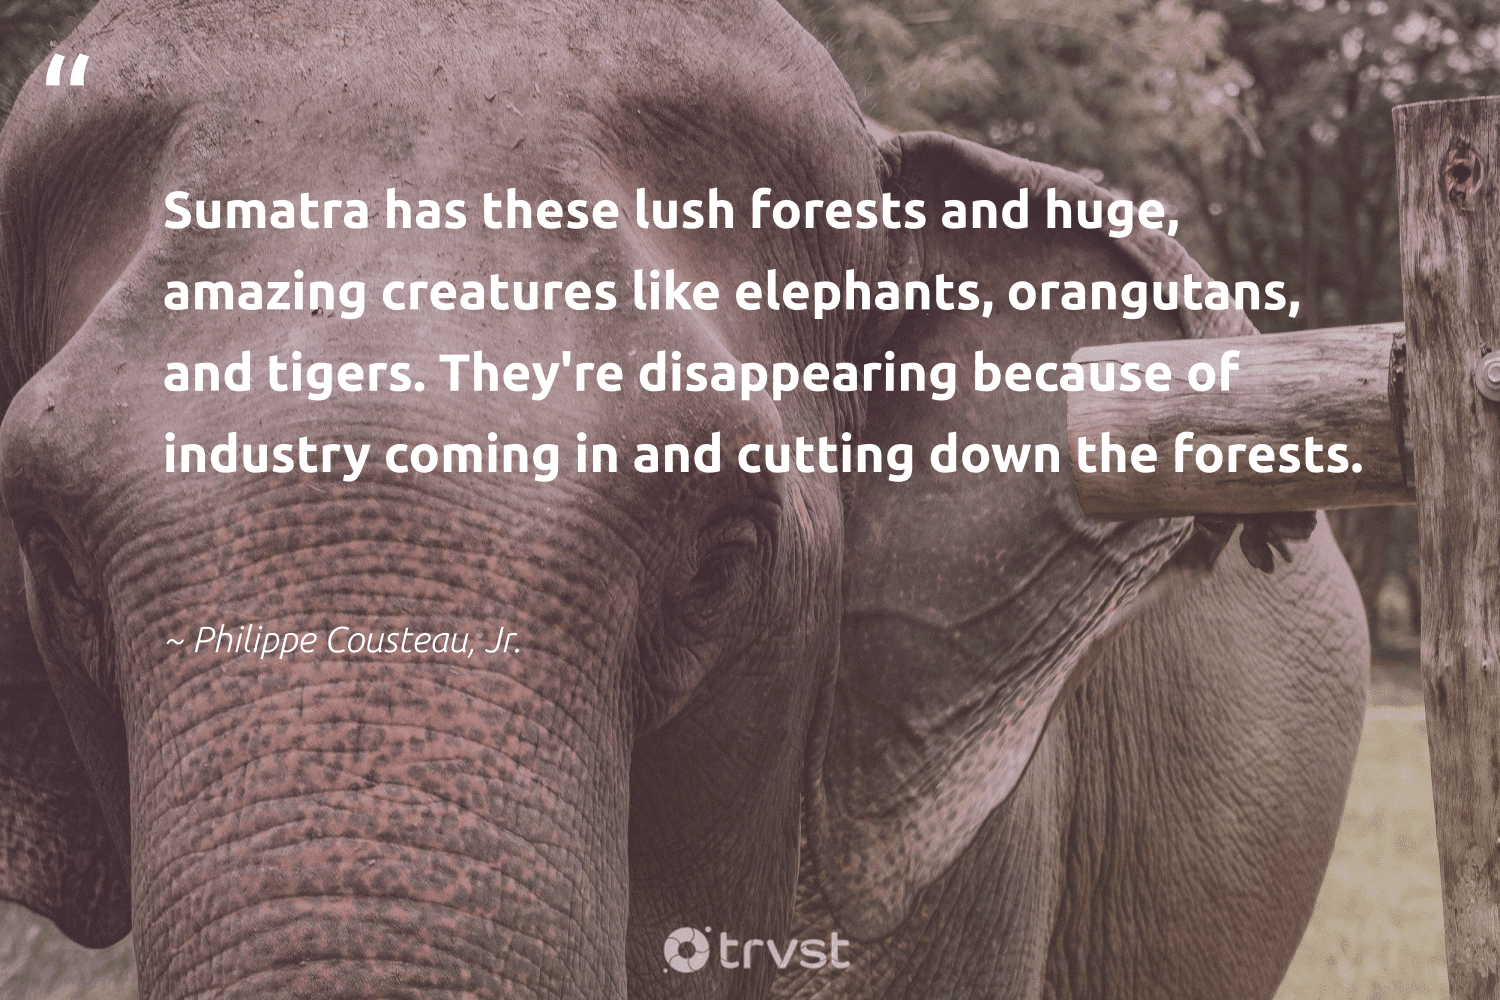 """""""Sumatra has these lush forests and huge, amazing creatures like elephants, orangutans, and tigers. They're disappearing because of industry coming in and cutting down the forests.""""  - Philippe Cousteau, Jr. #trvst #quotes #elephants #mammals #impact #conservation #dotherightthing #animals #socialimpact #elephant #planetearthfirst #endangeredspecies"""